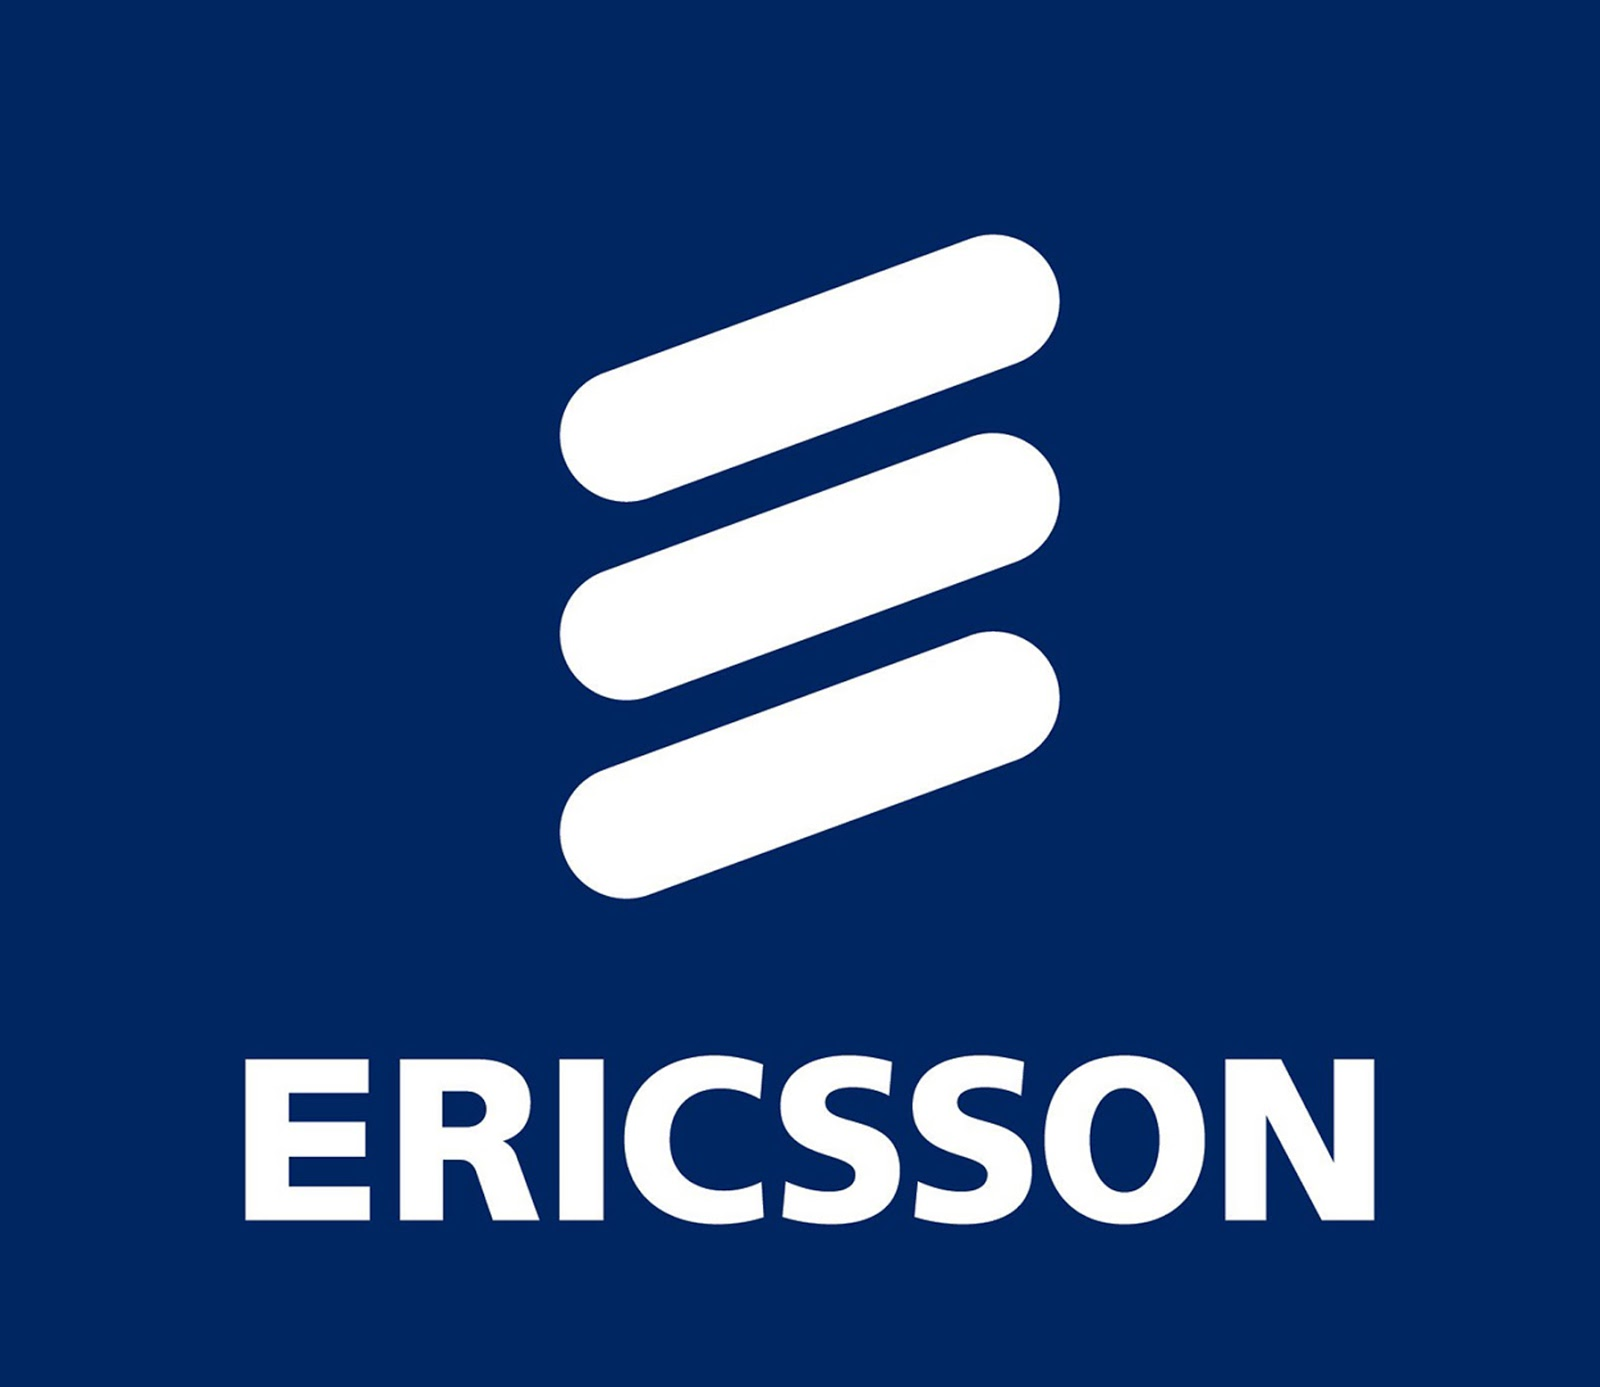 Ericsson - Mobile World Congress (MWC)